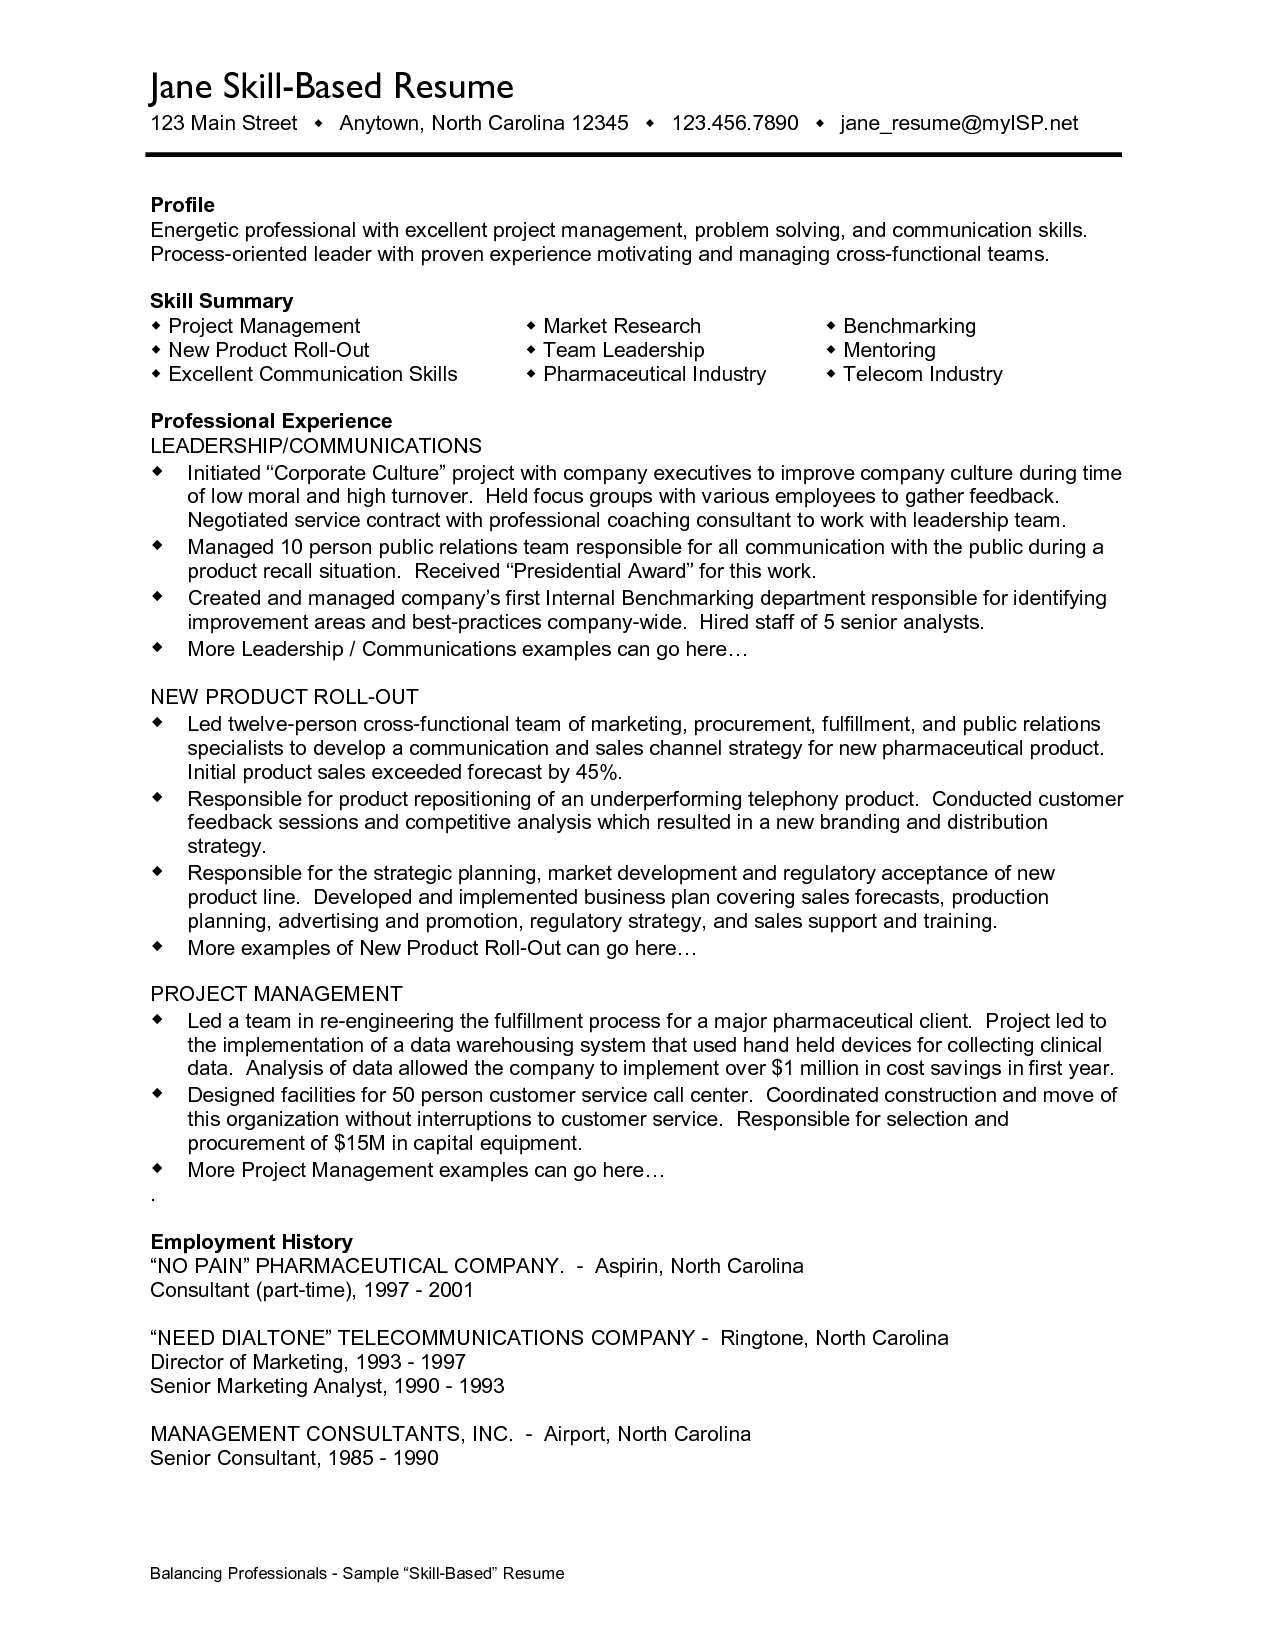 Skills In Resume Sample